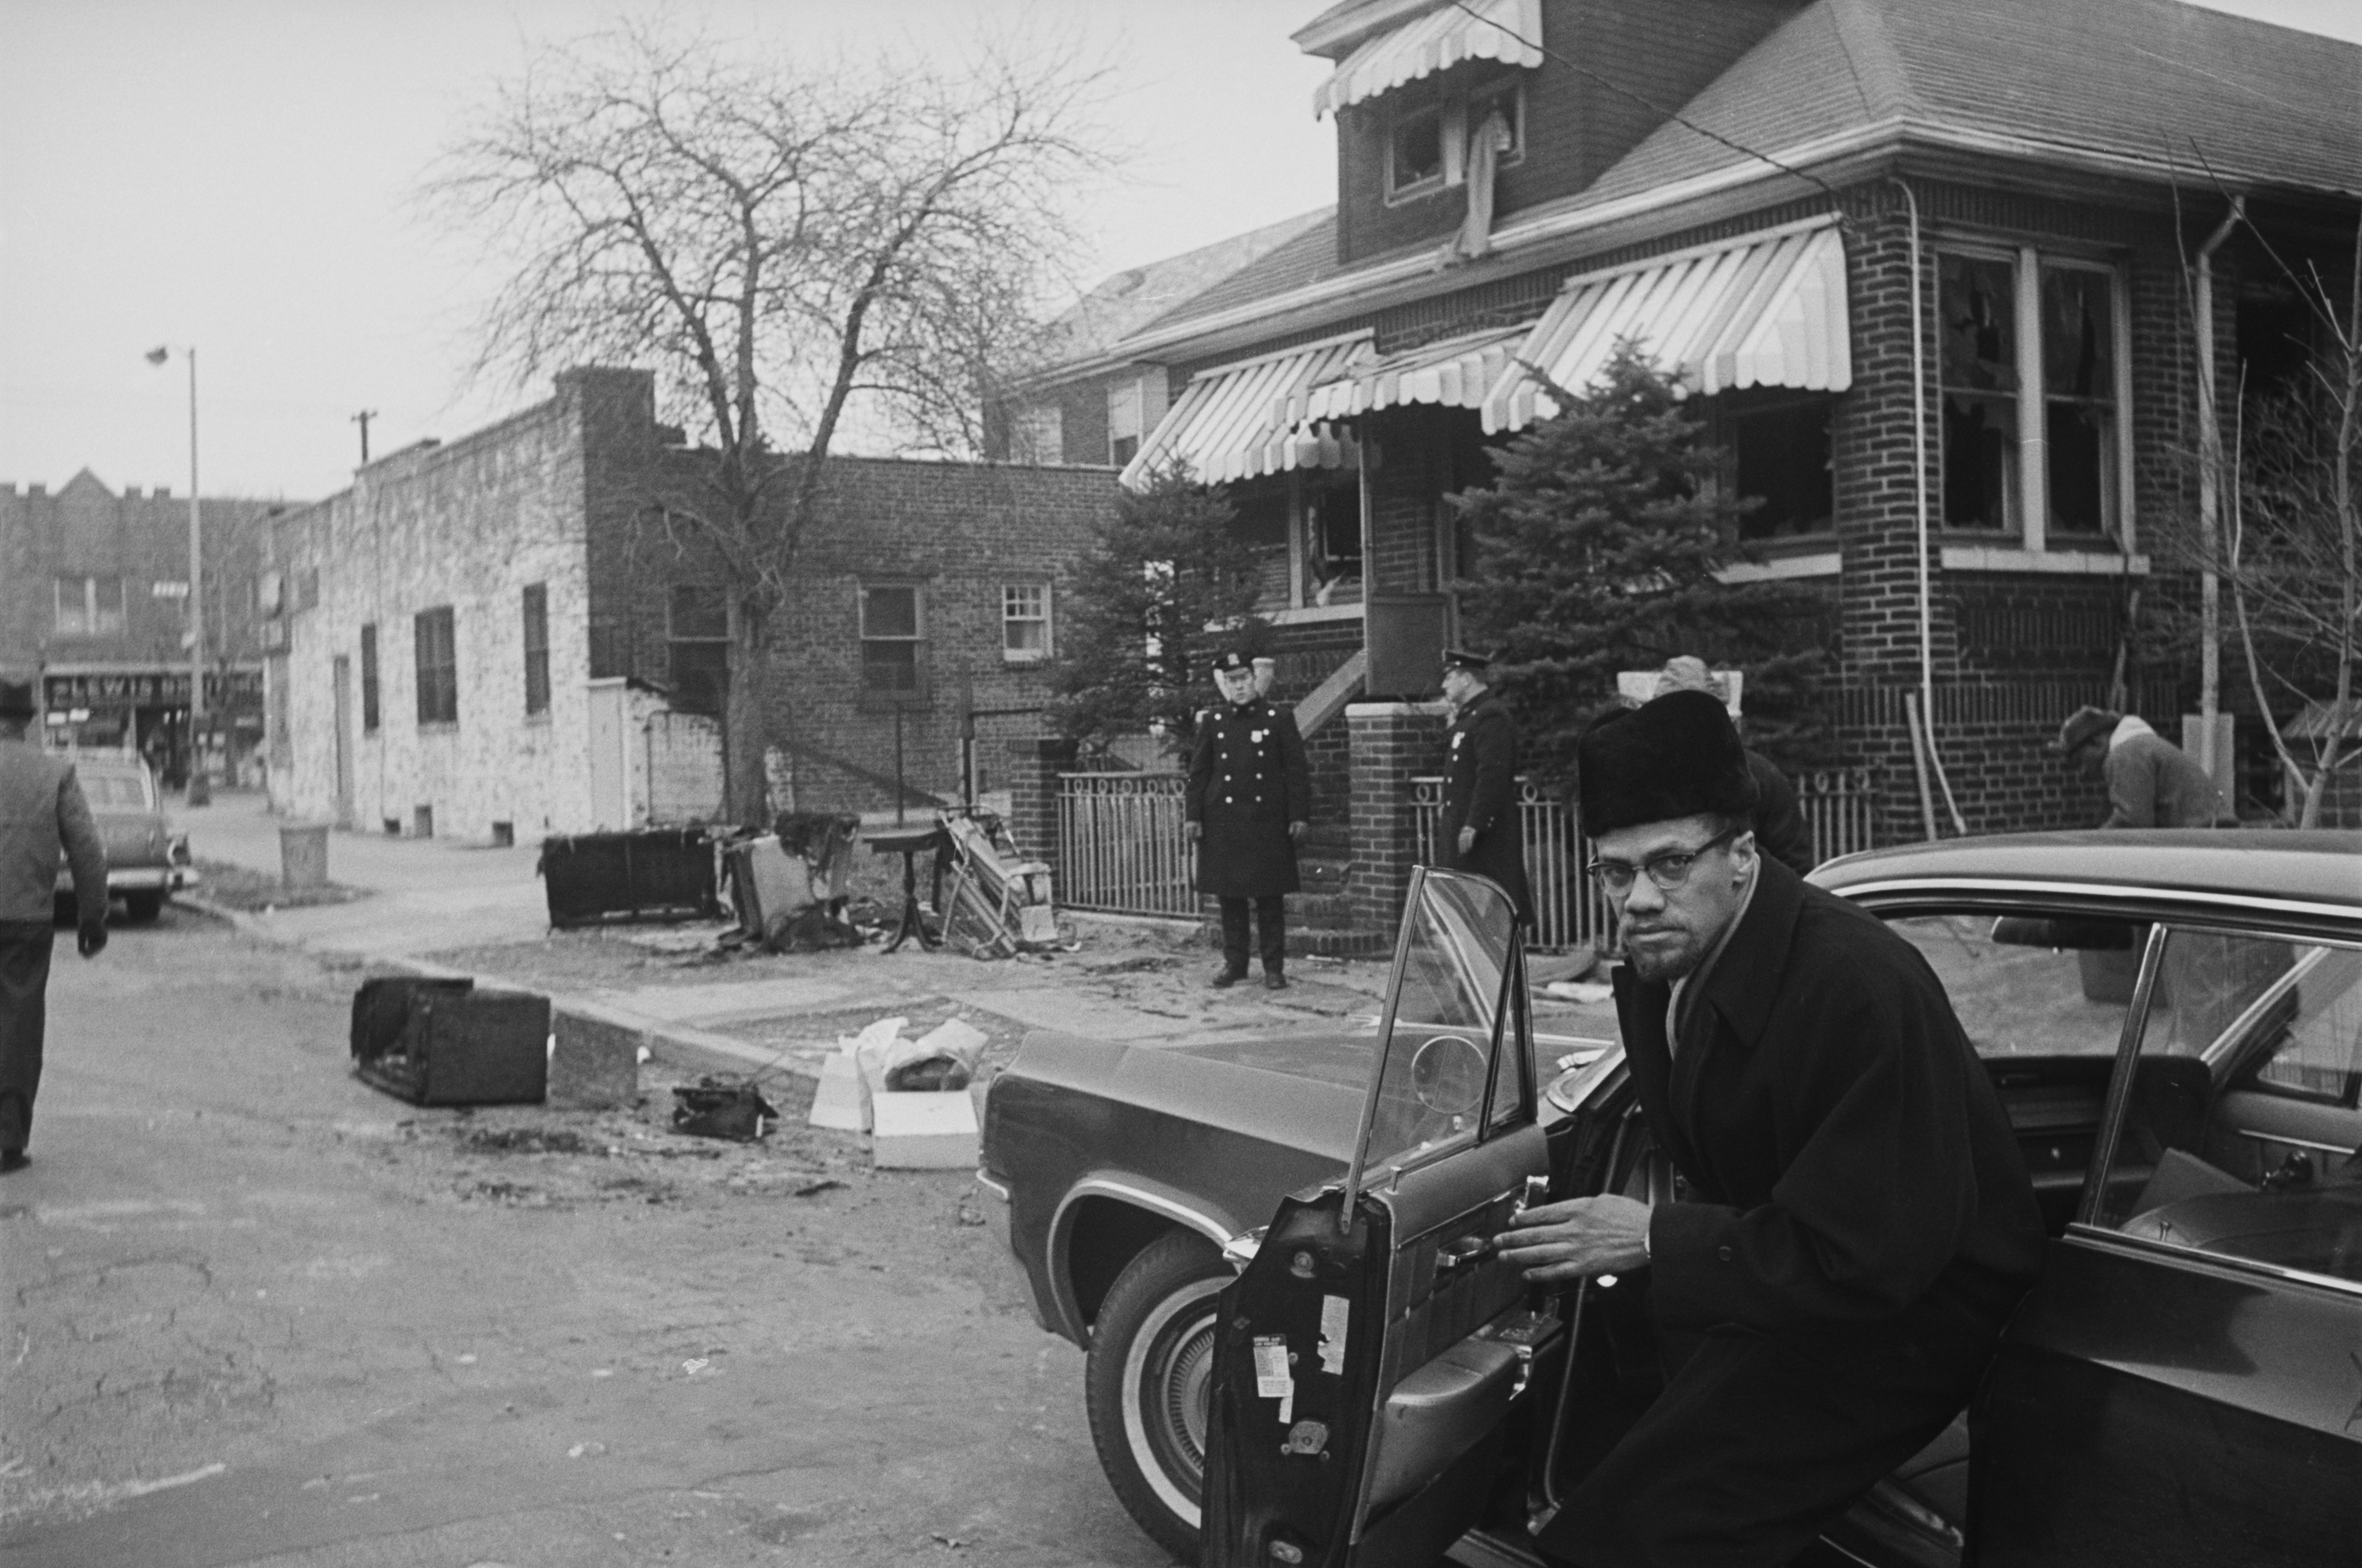 Malcolm X outside his house, which had been firebombed the night before, on Feb. 15, 1965.